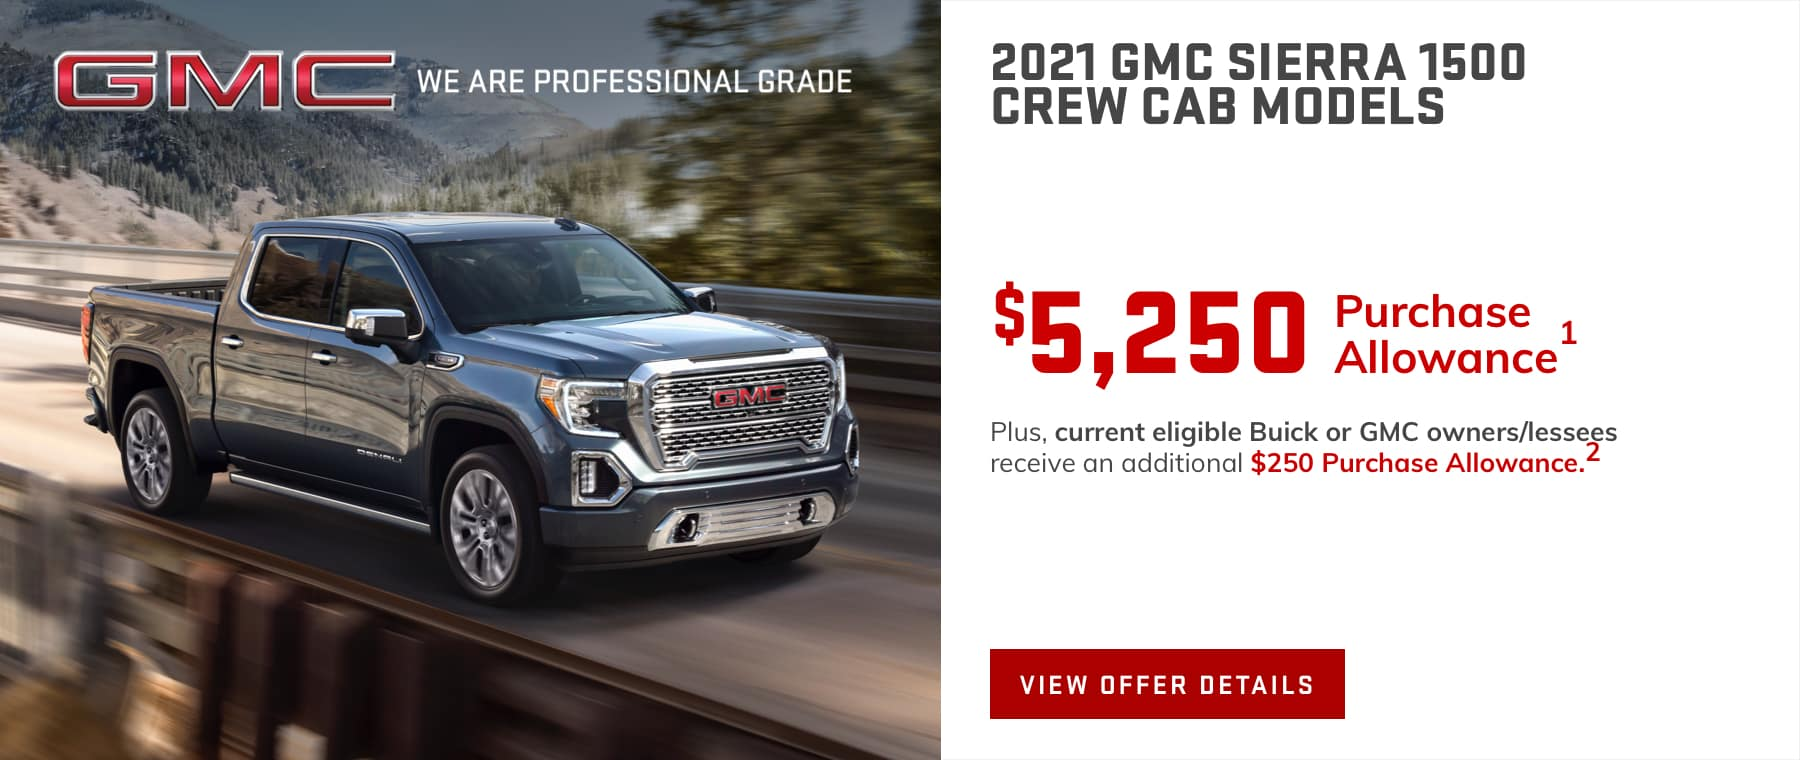 Price after all offers on this Sierra.1 Plus, current eligible Buick or GMC owners/lessees receive an additional $250 Purchase Allowance.2